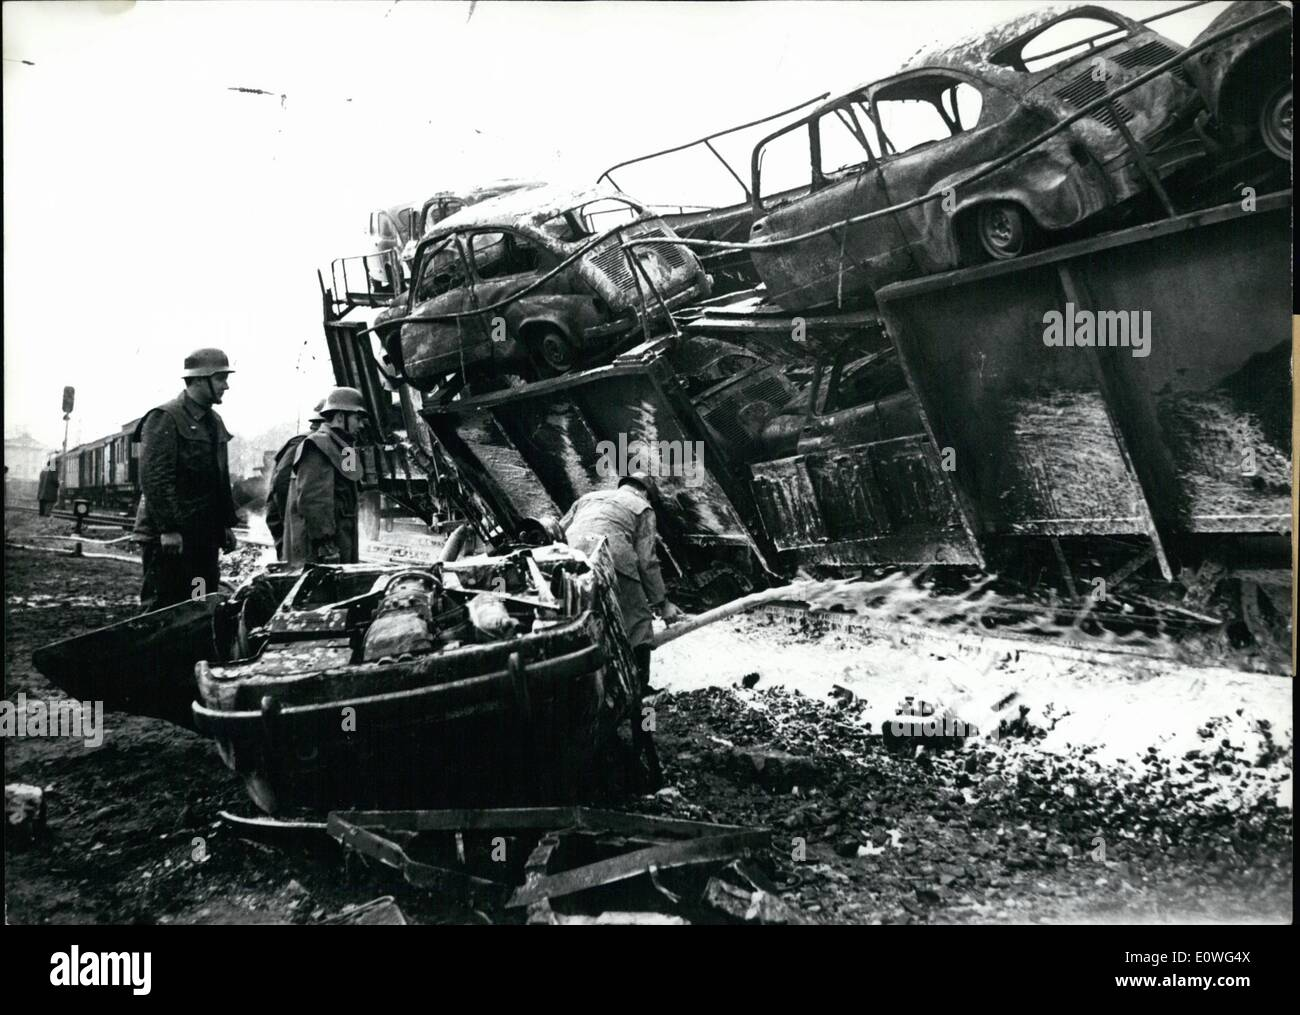 Nov. 11, 1962 - Railway accident near Munich On aga inst 2 clock in he morning 2 goods- train collided at pfaffenhoifon (Pfaffenhofen) near Munich. Most of the waggons cya -shod down a sope and burnt out,. one of the 2 trains was a transport train with motorcars coming from the factory. The damage amount to a bout 1 million Dm (Deutsche Mark) Luckely human life's have not been injured. photo shows Extinguish-work at the completely burnt out motorcars. - Stock Image